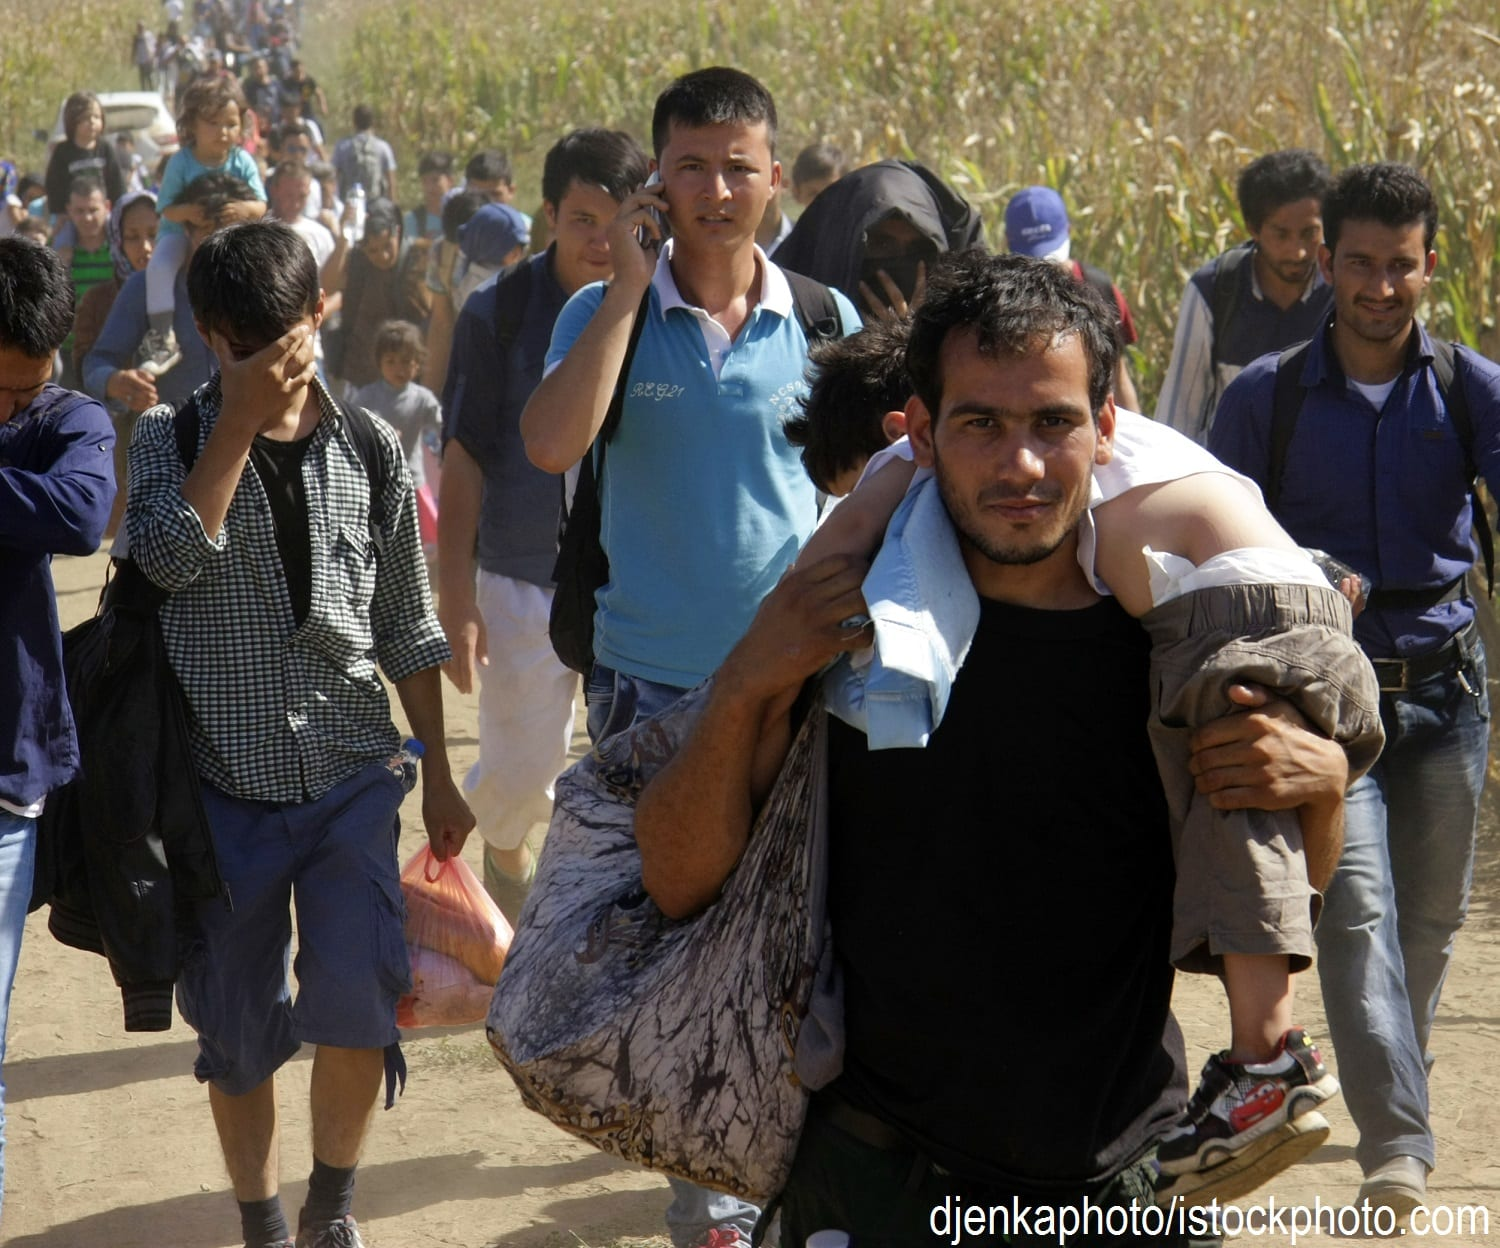 Refugees from Syria walking from Croatia to Serbia.